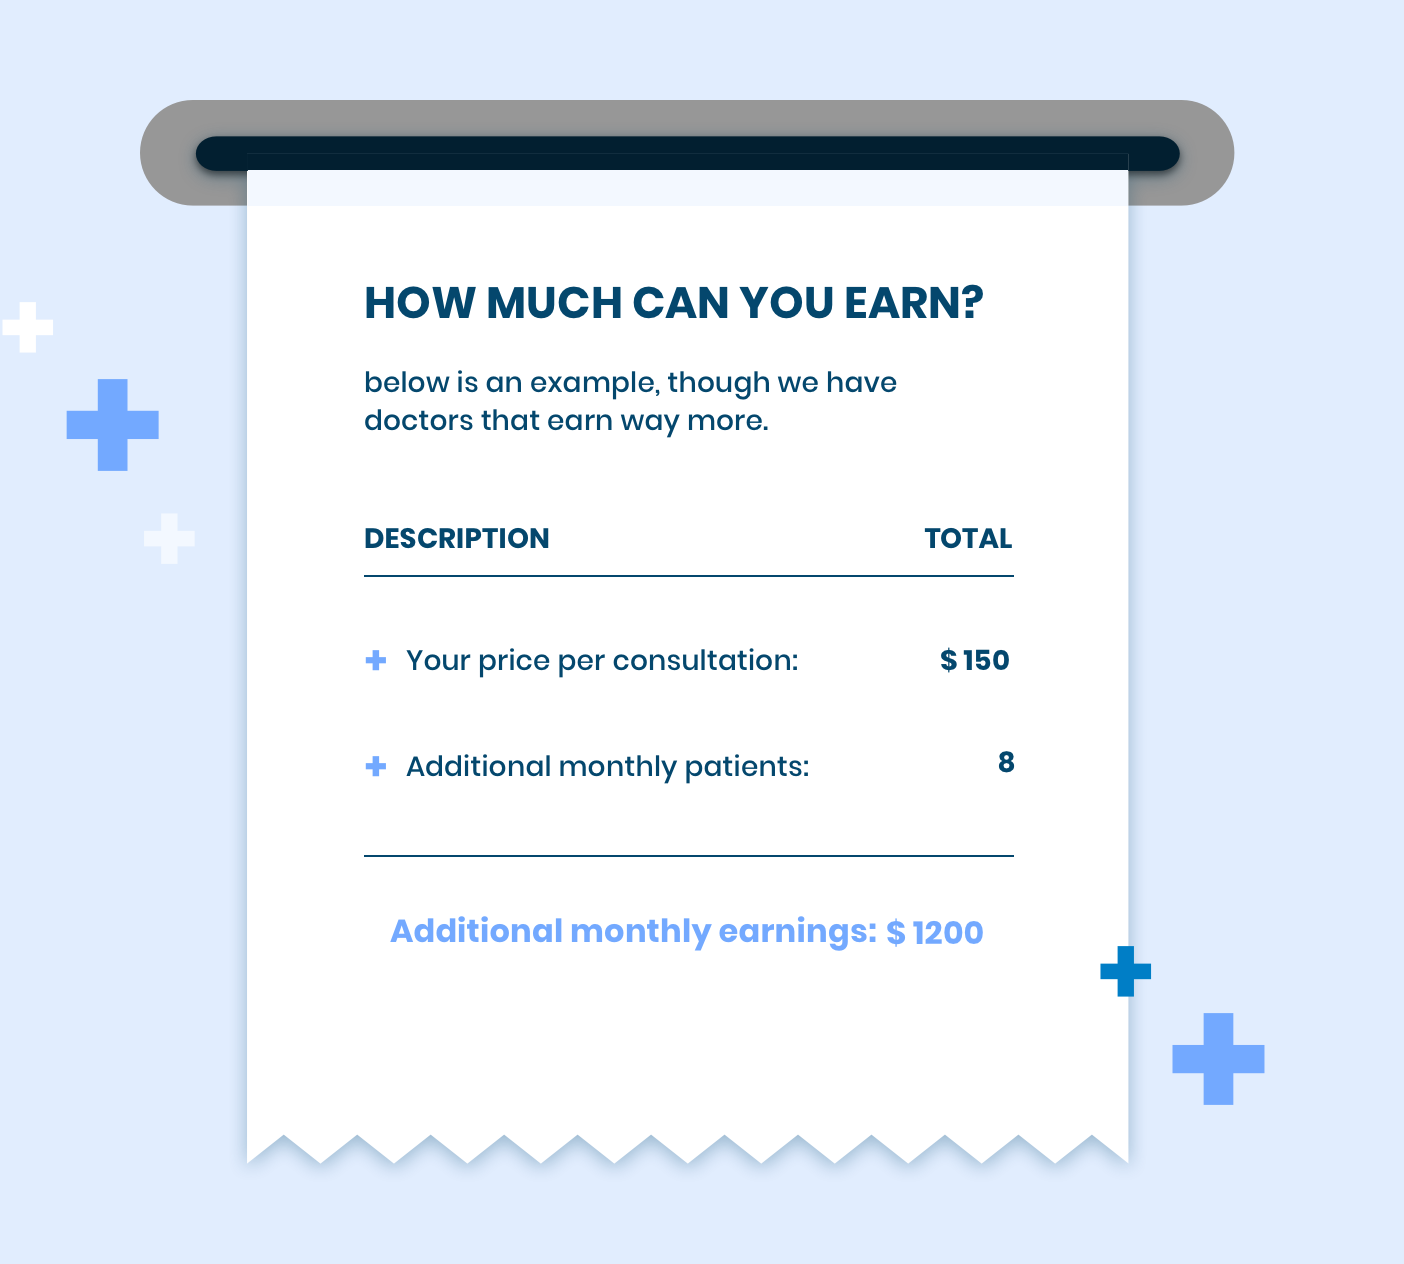 HOW MUCH CAN YOU EARN?